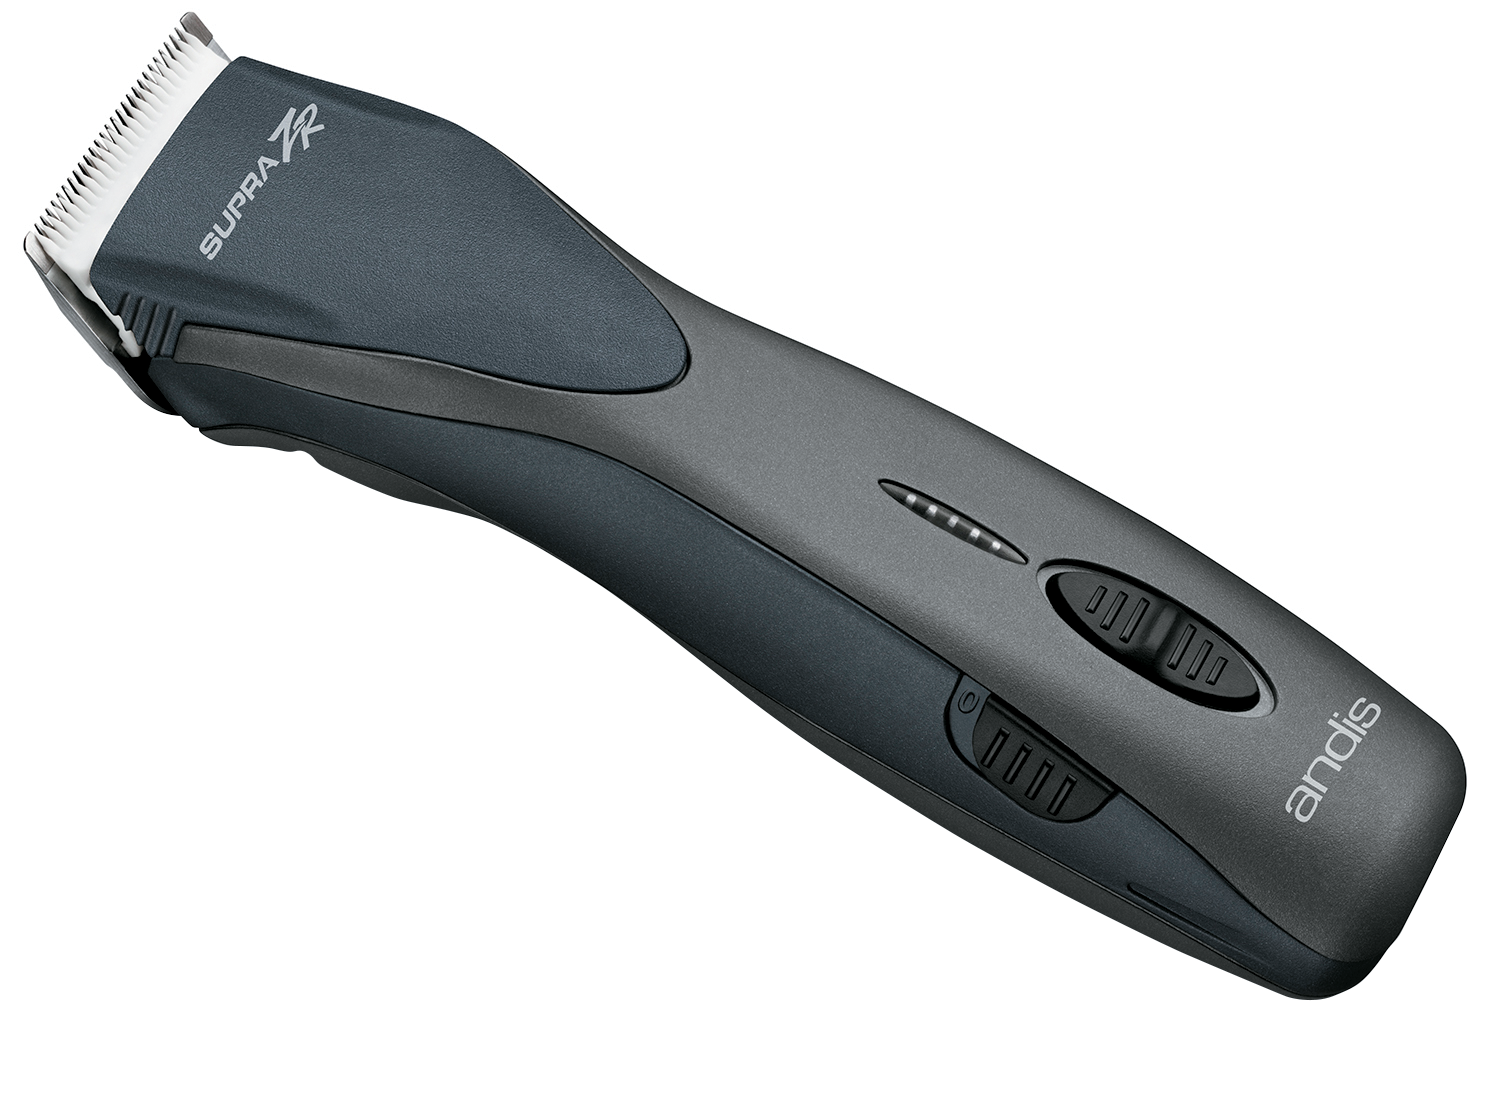 ANDIS Supra ZR Detachable Blade Clipper is cordless, delivers up to two hours of run time and offers five cutting speeds. The interchageable blades can achieve any cut on wet or dry hair.